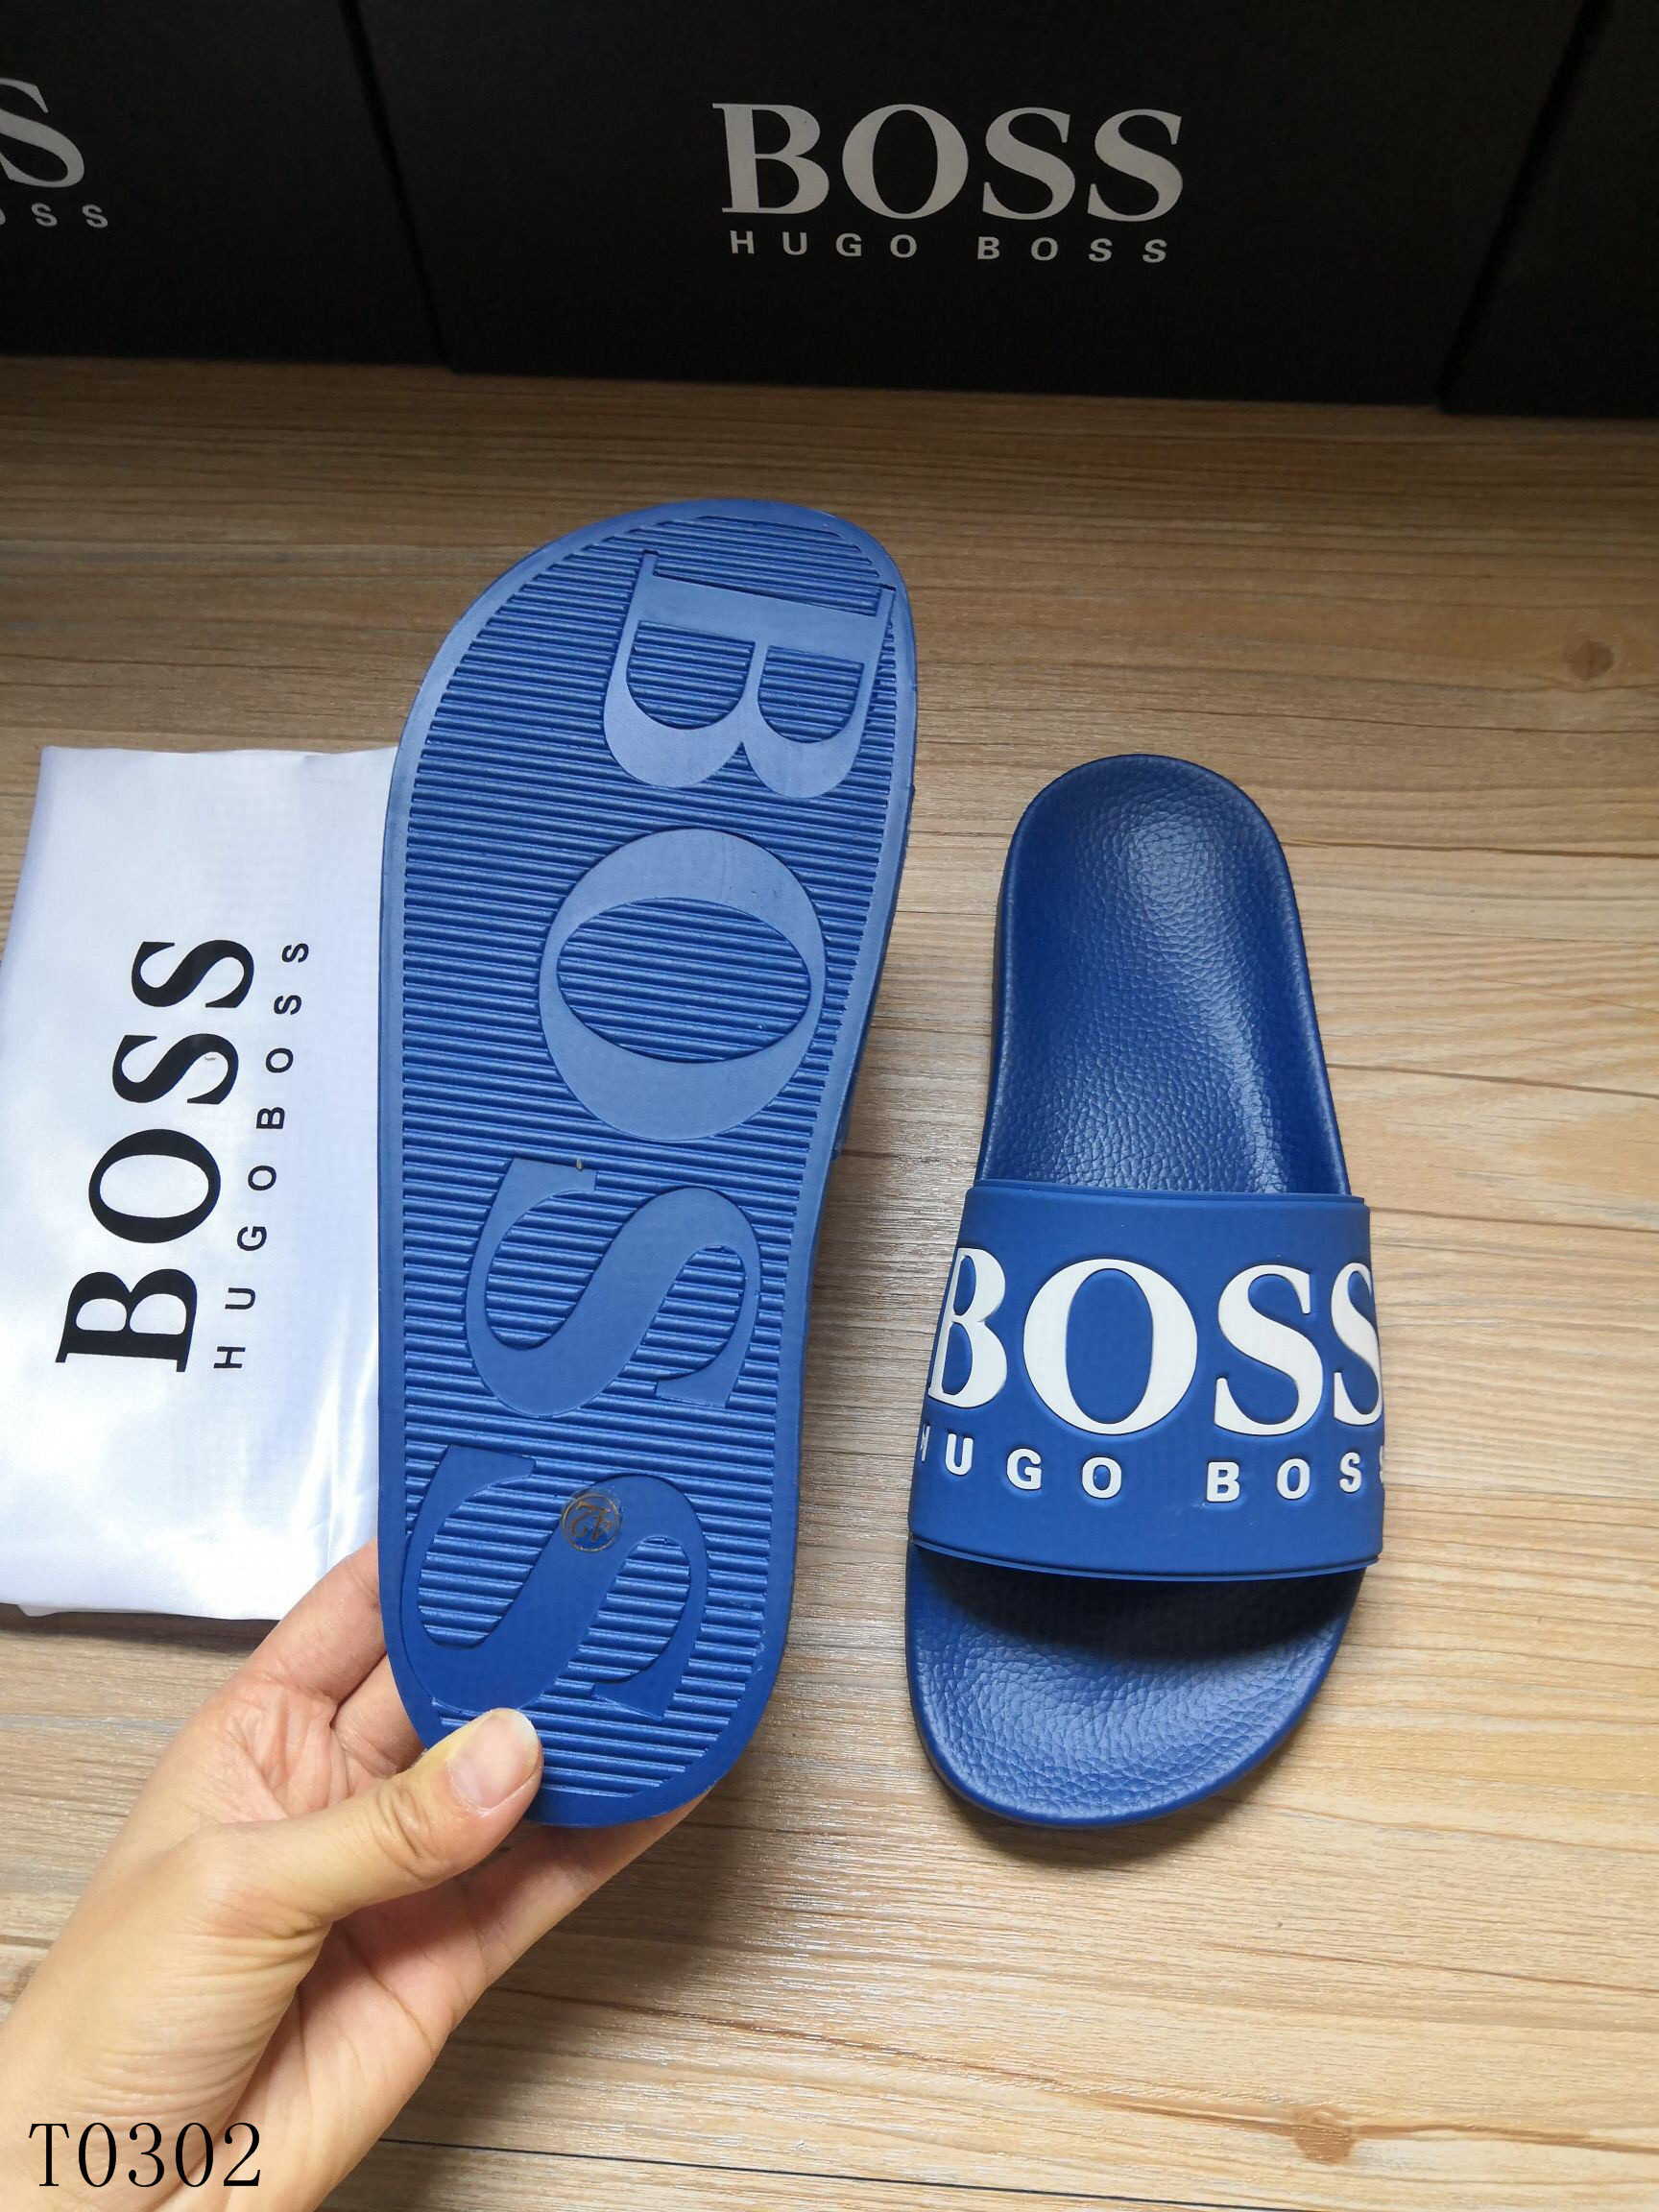 Hugo Boss Women's Slippers 07